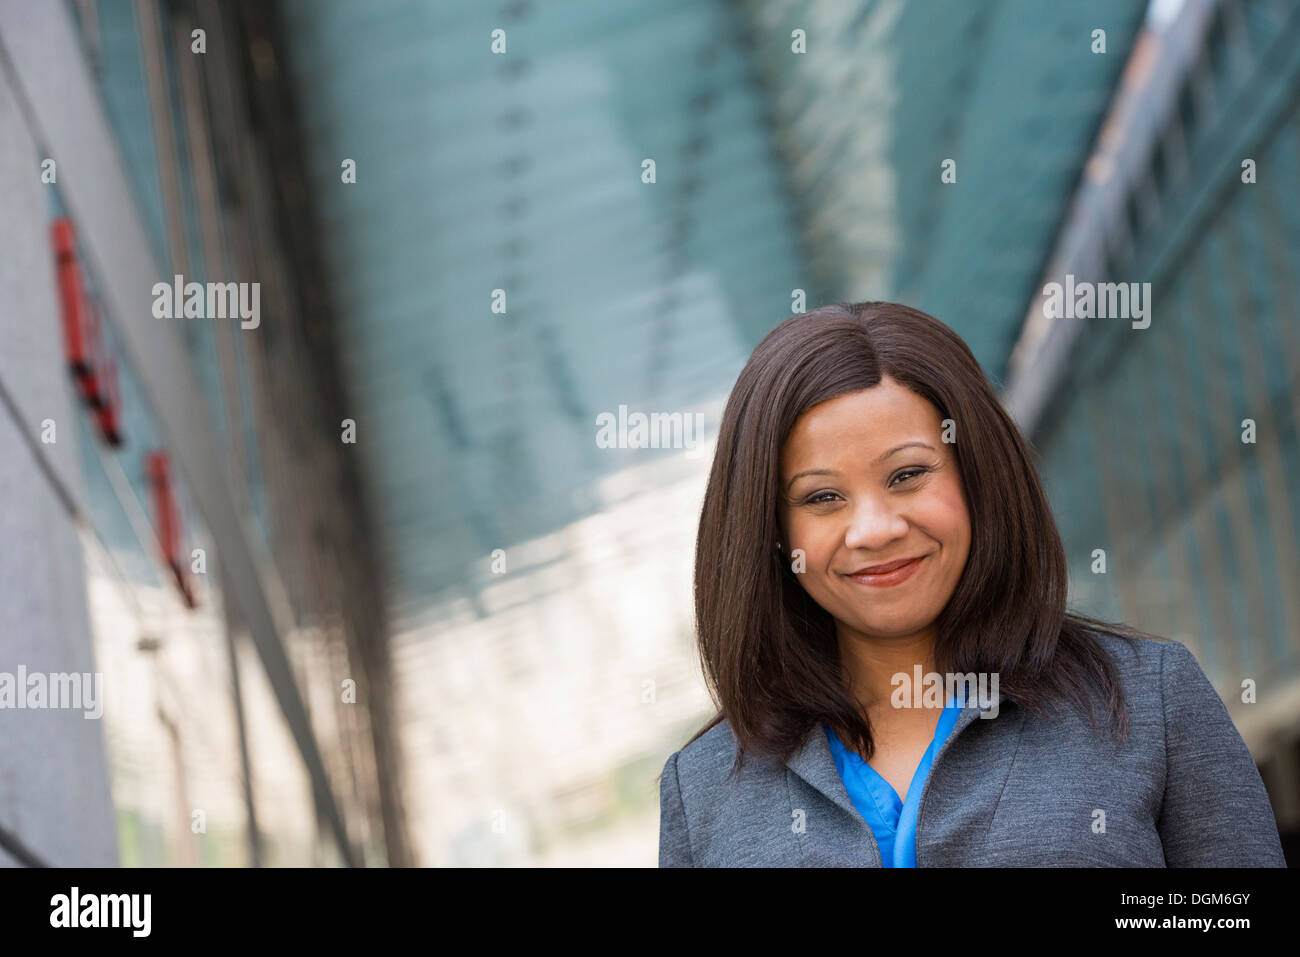 Summer. A woman in a grey suit with a bright blue shirt. - Stock Image